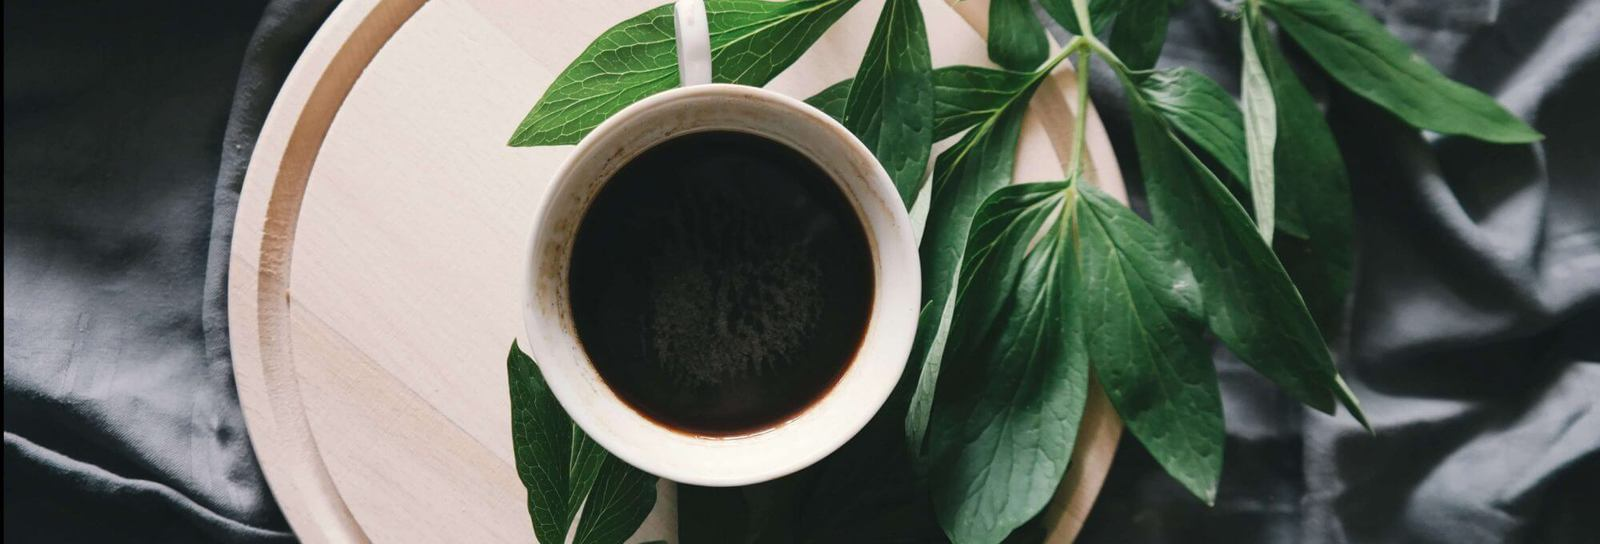 Coffee in a cup surrounded by leaves - Can you drink coffee and still be vegan banner image